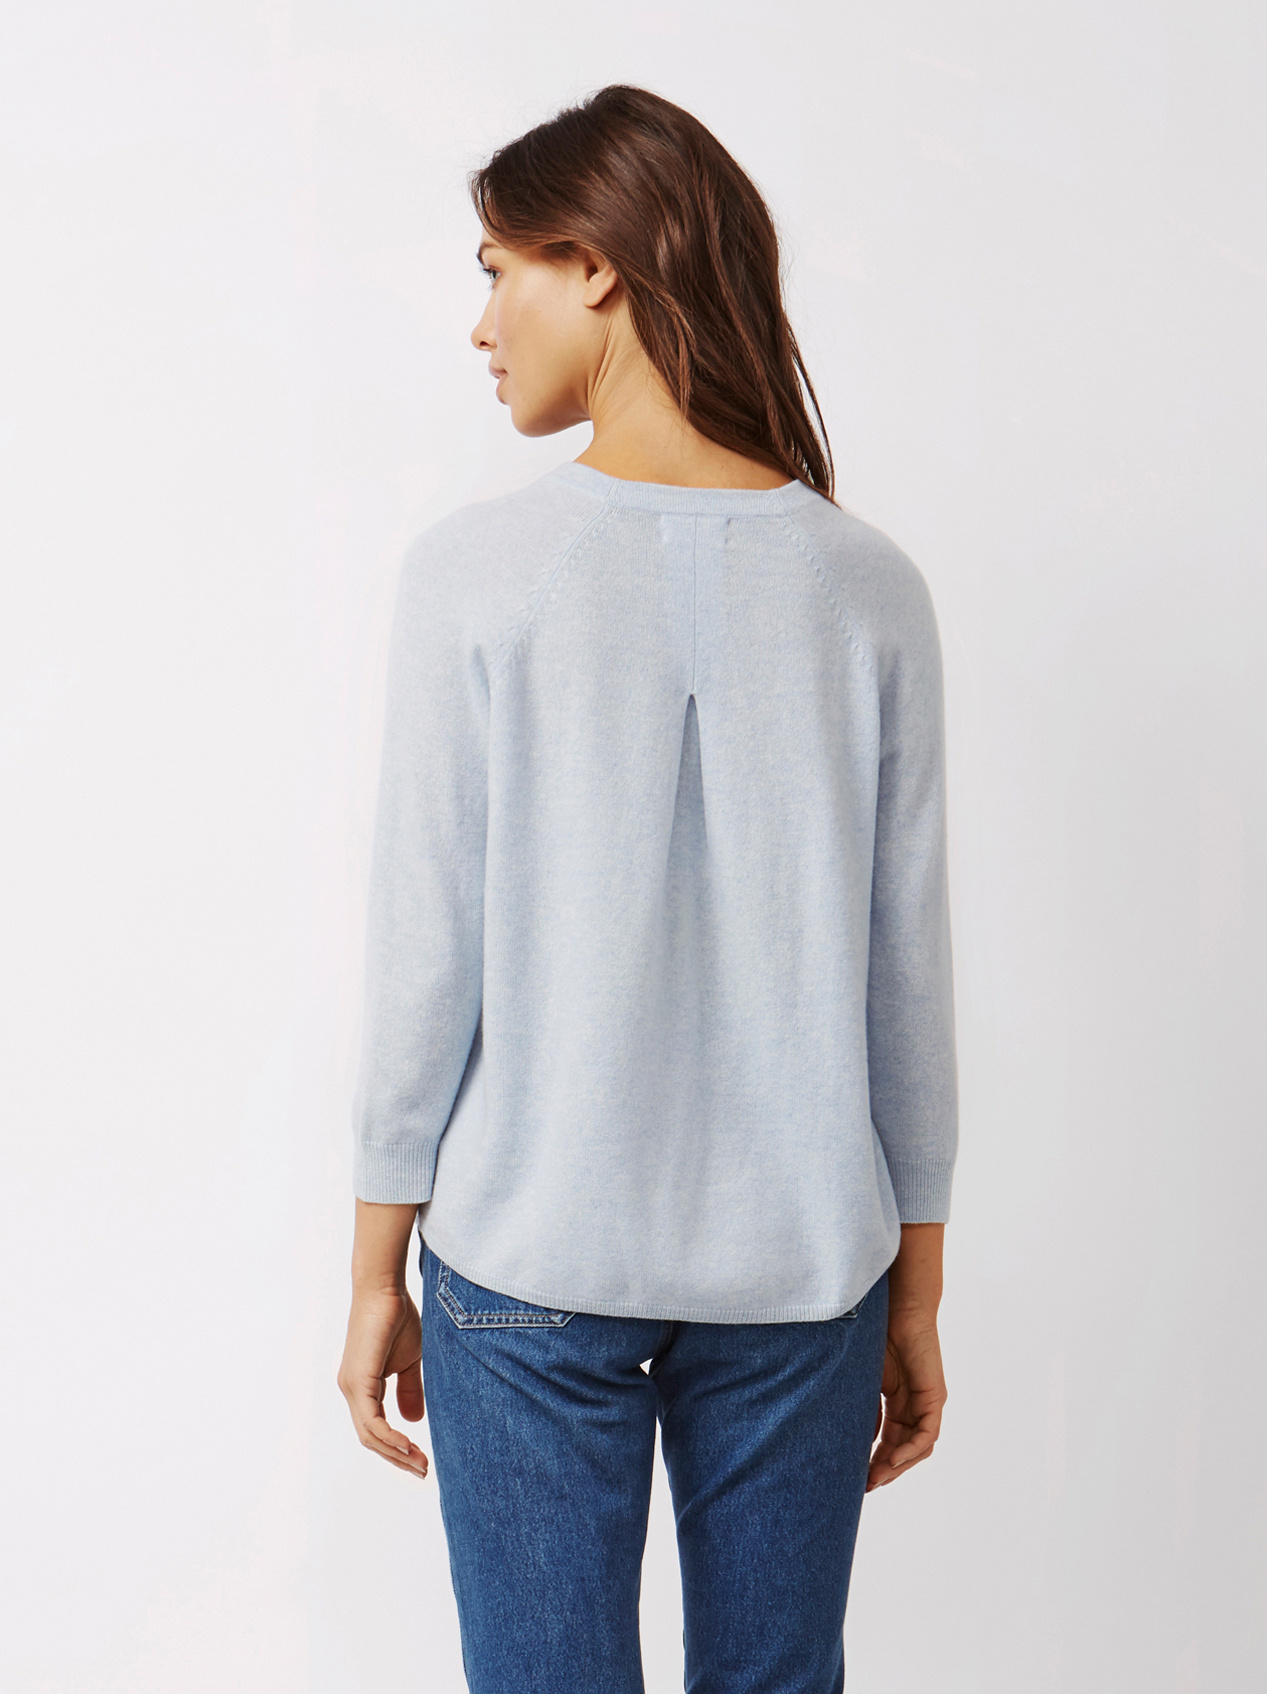 Soft Goat Women's Rounded Sweater Light Blue